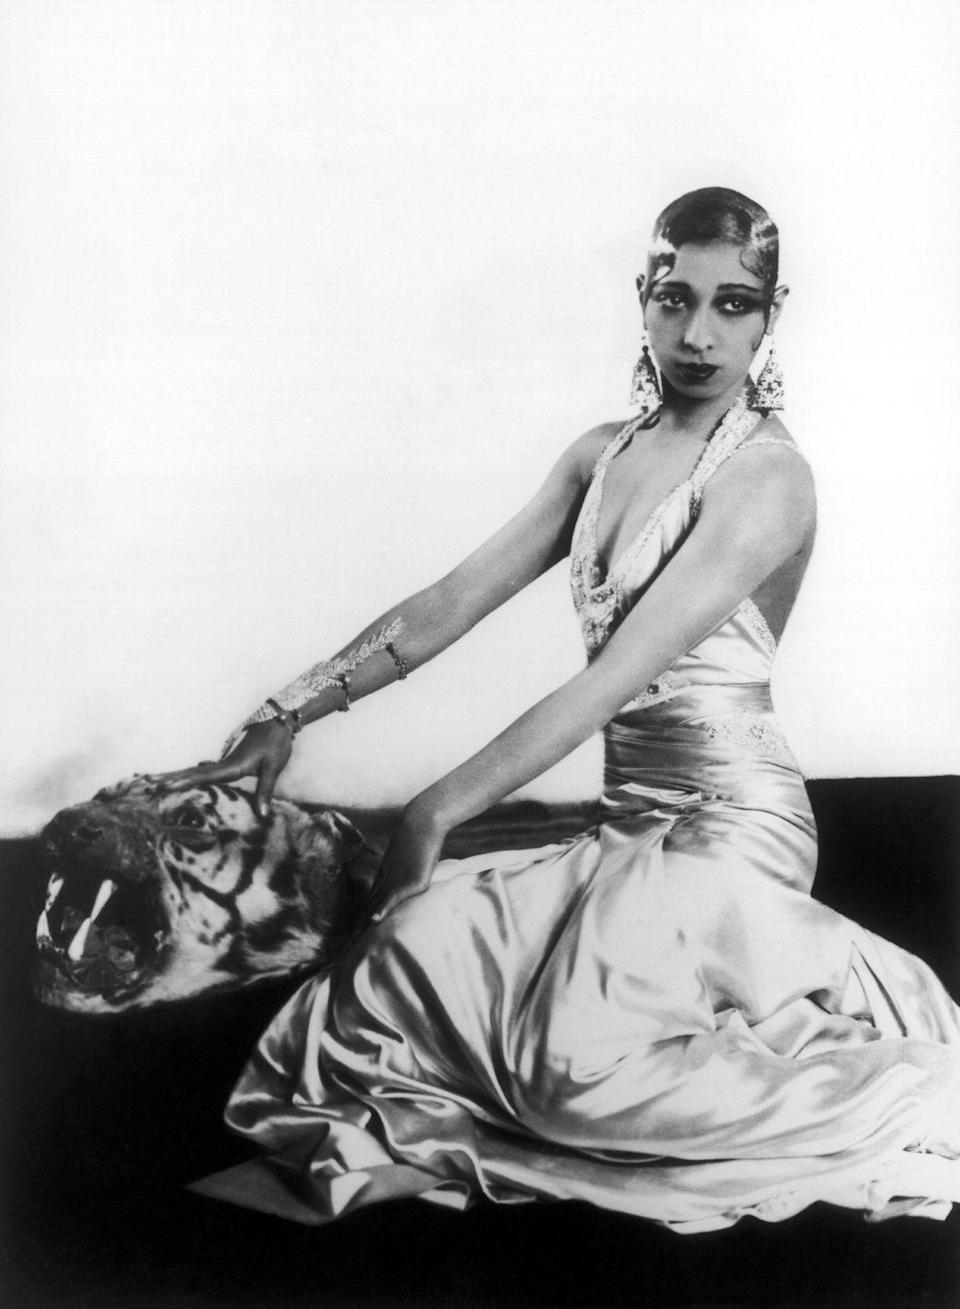 """<p>Josephine Baker sashayed onto a Paris stage during the 1920s with a comic, yet sensual appeal that took Europe by storm. Famous for barely-there dresses and no-holds-barred dance routines, her exotic beauty generated nicknames like """"Black Venus"""" and """"Creole Goddess."""" Her name was equally beloved, taking the 27 spot on the charts. The top three for boys and girls? Unsurprisingly, they held fast: John, Robert, William, Mary, Helen, and Dorothy.</p>"""